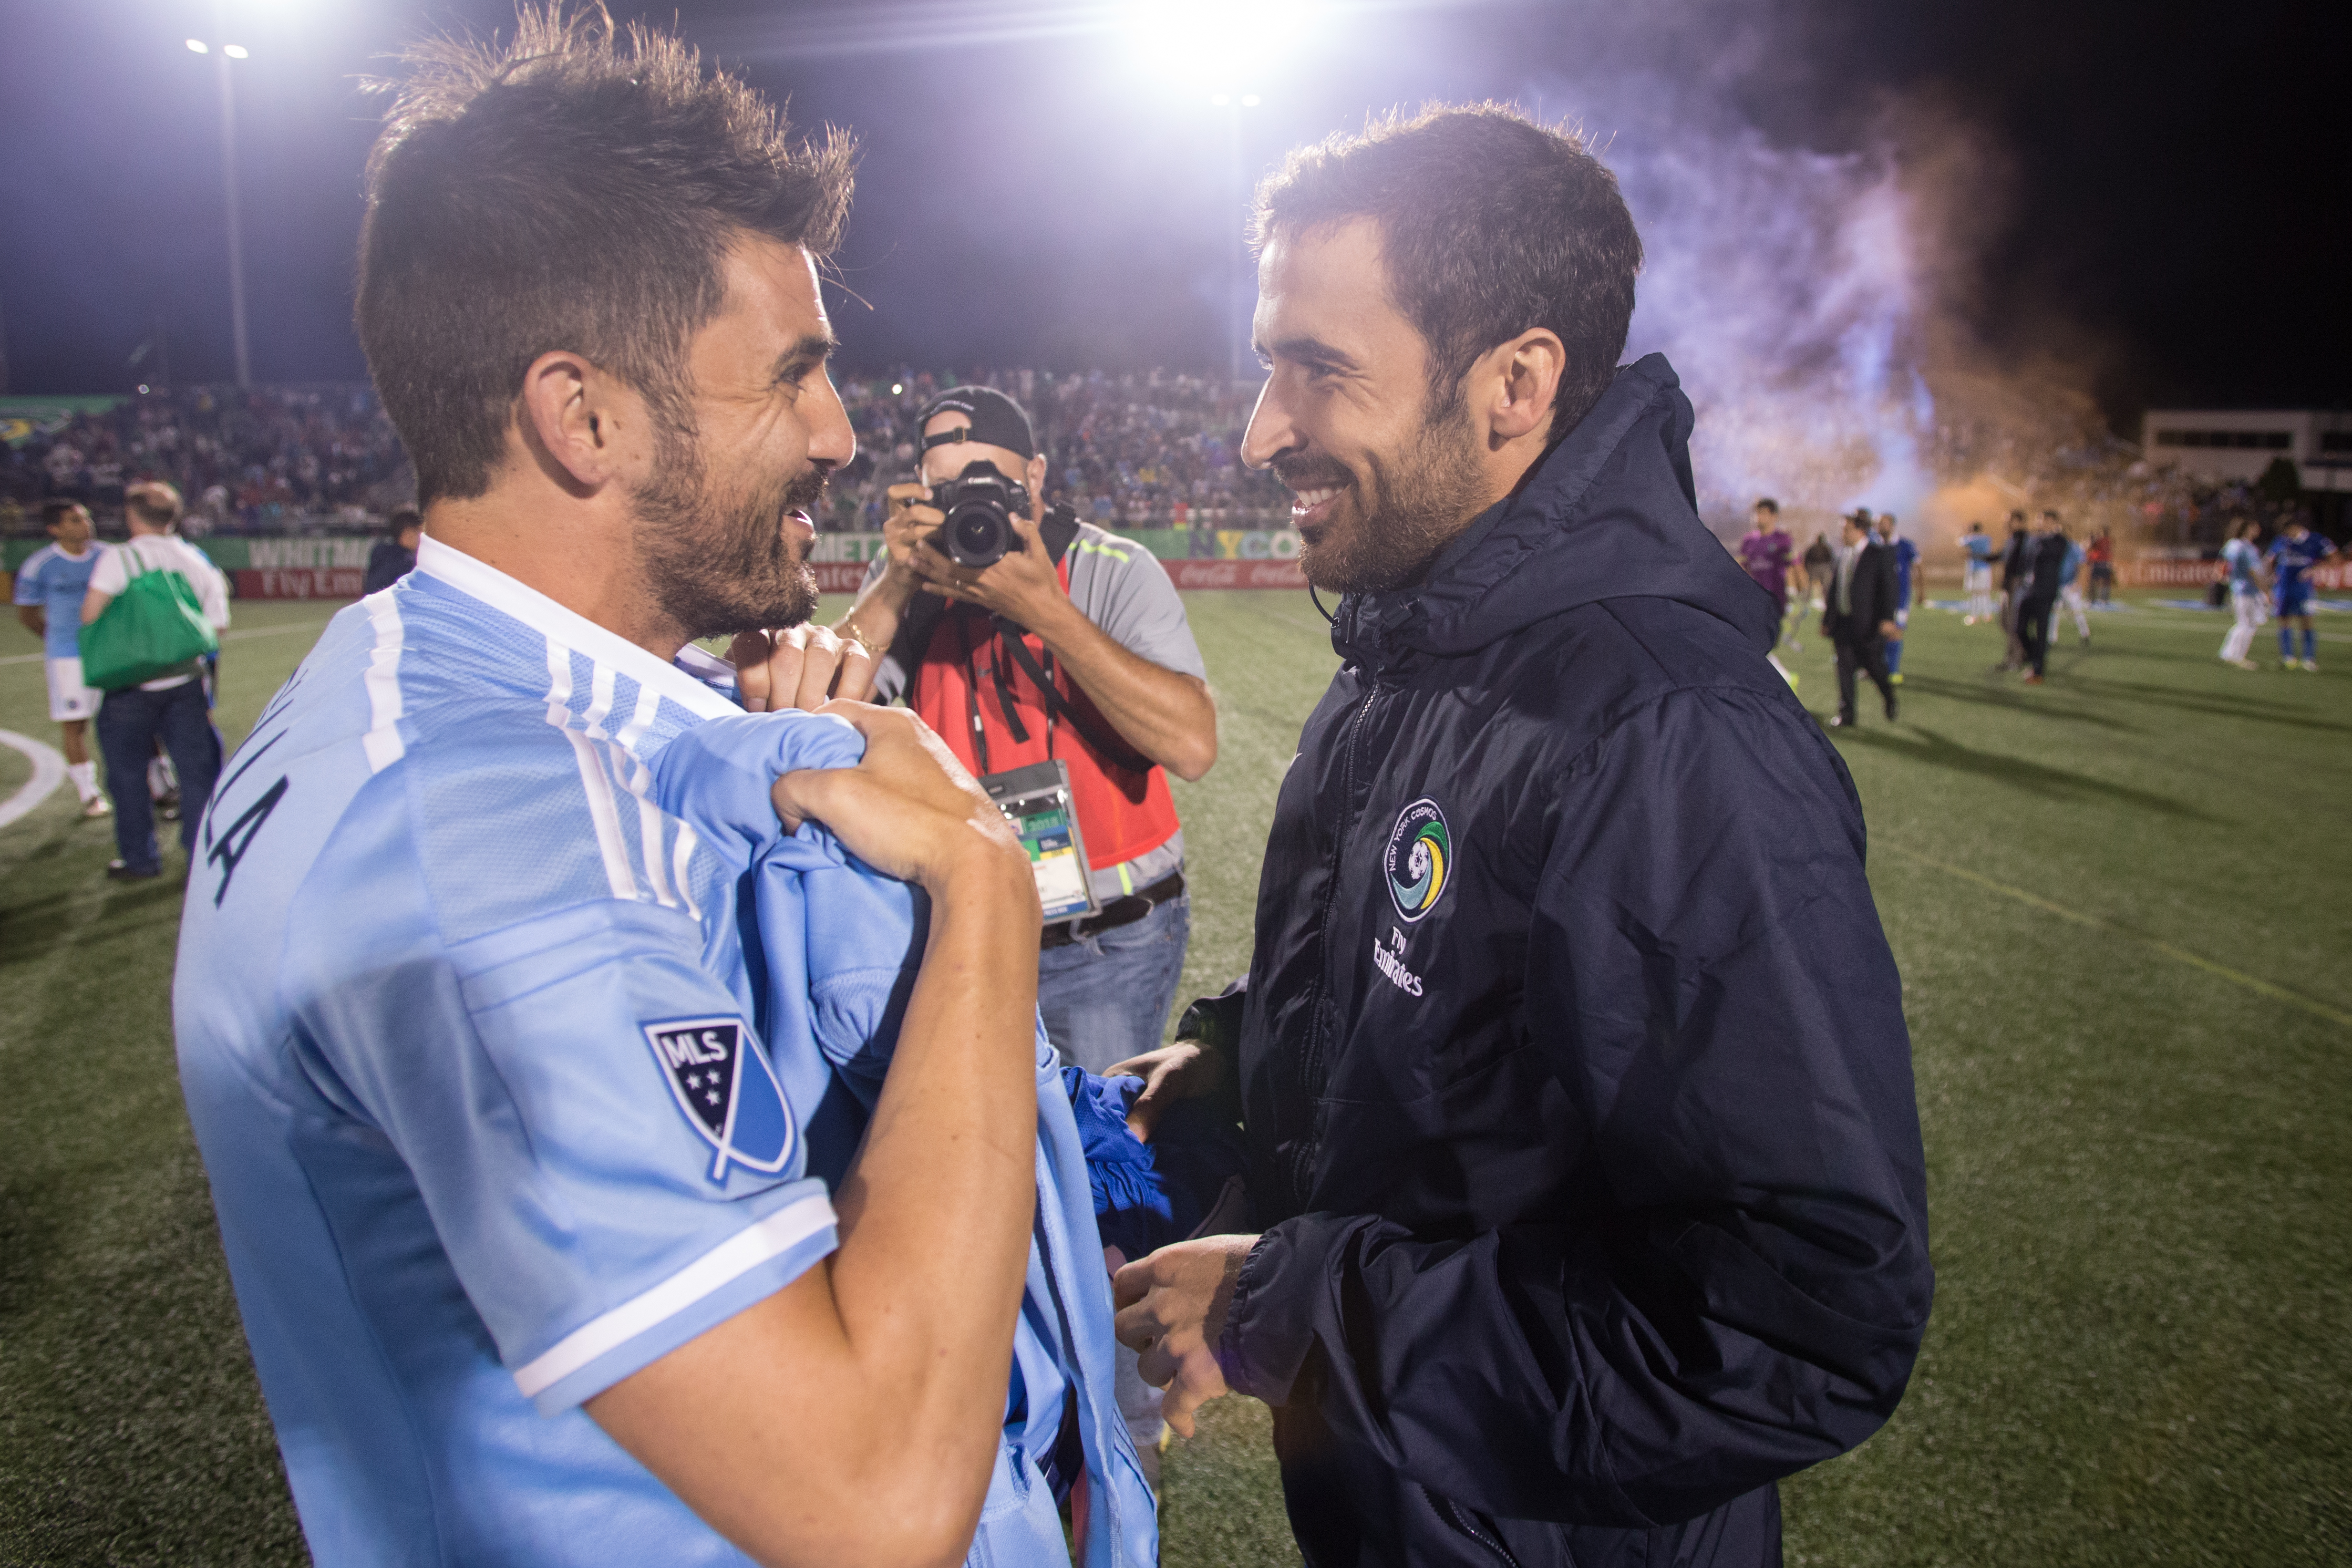 Soccer, 2015 Lamar Hunt U.S. Open Cup Fourth Round, New York City FC vs NY Cosmos